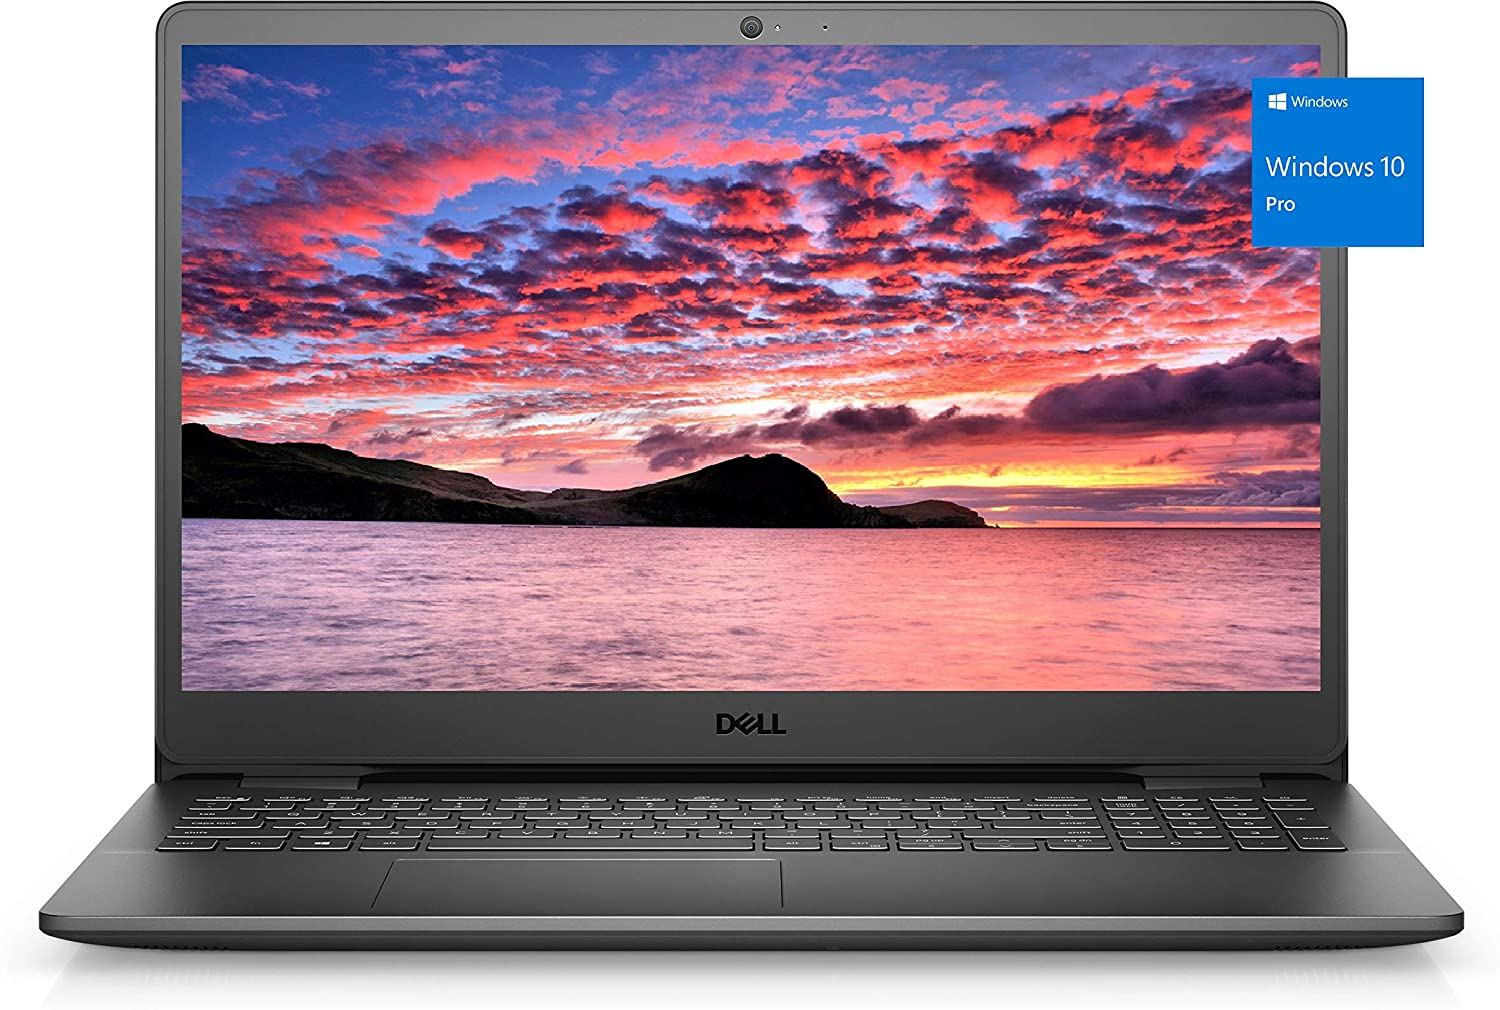 Dell Inspiron 3000 Business Laptop